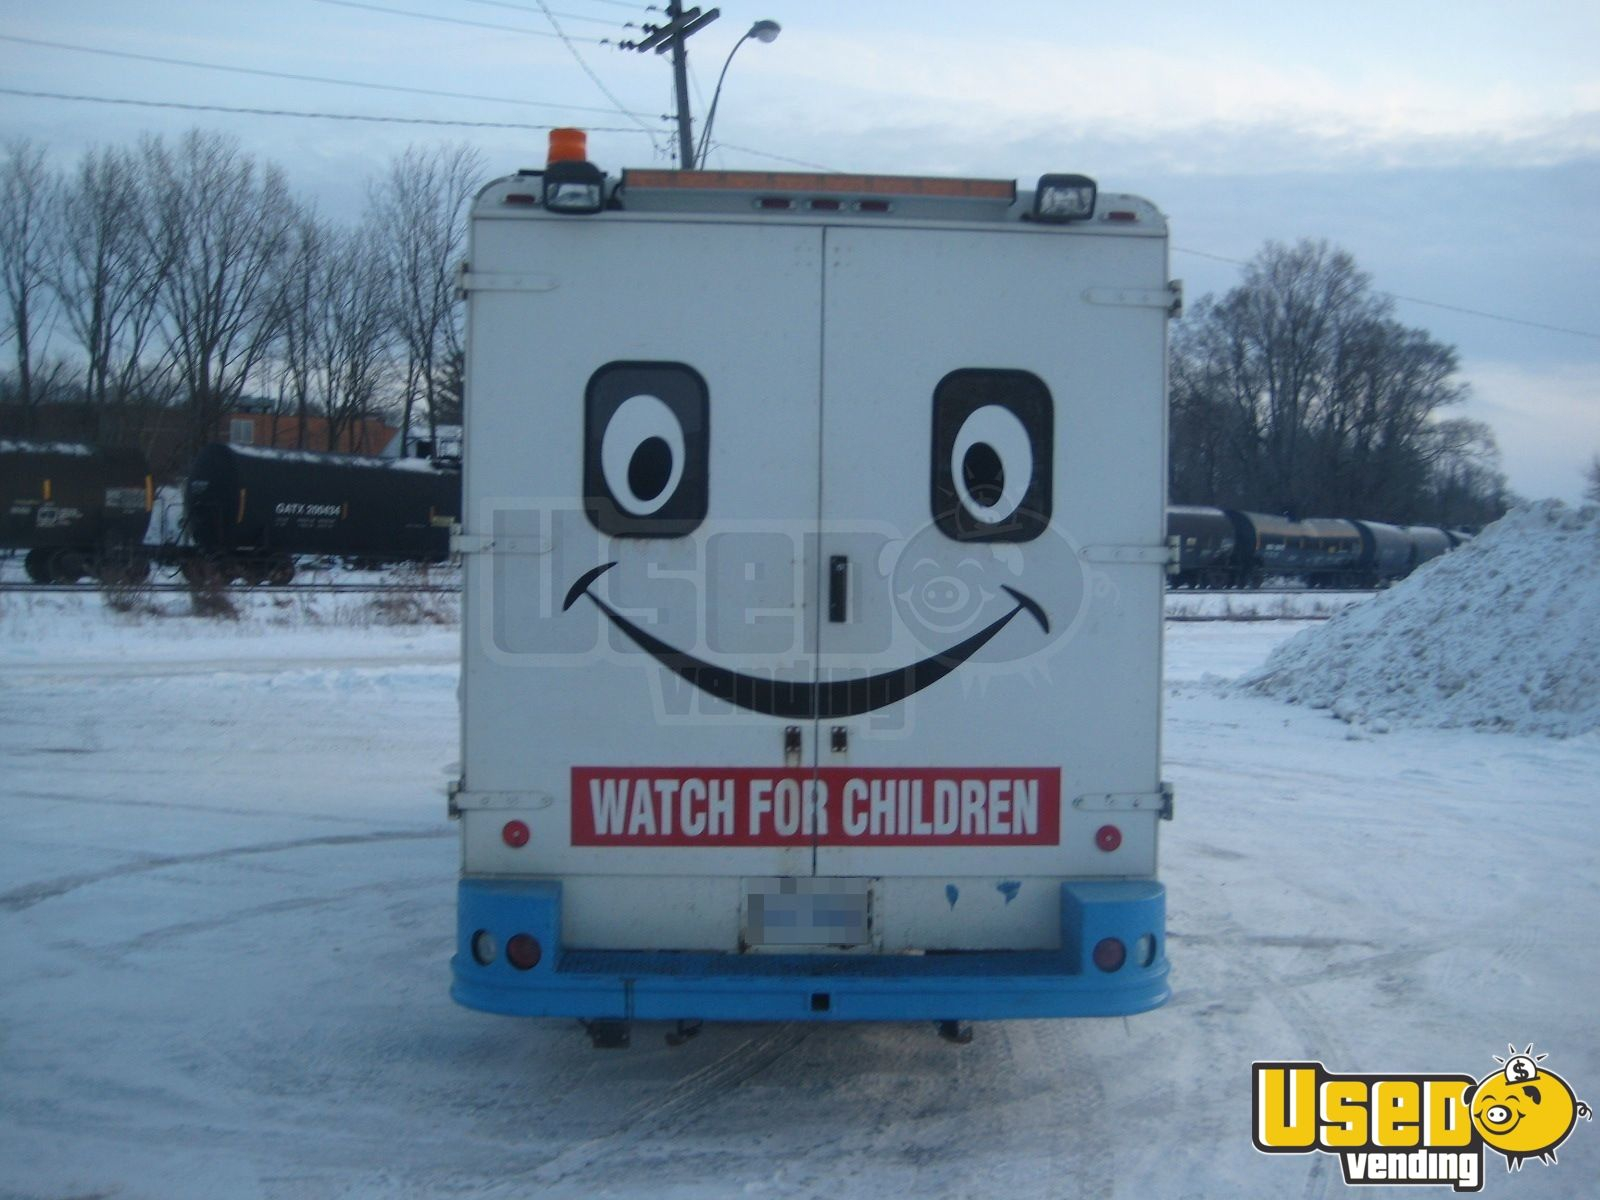 Used Freightliner Ice Cream Truck in Canada for Sale - 4